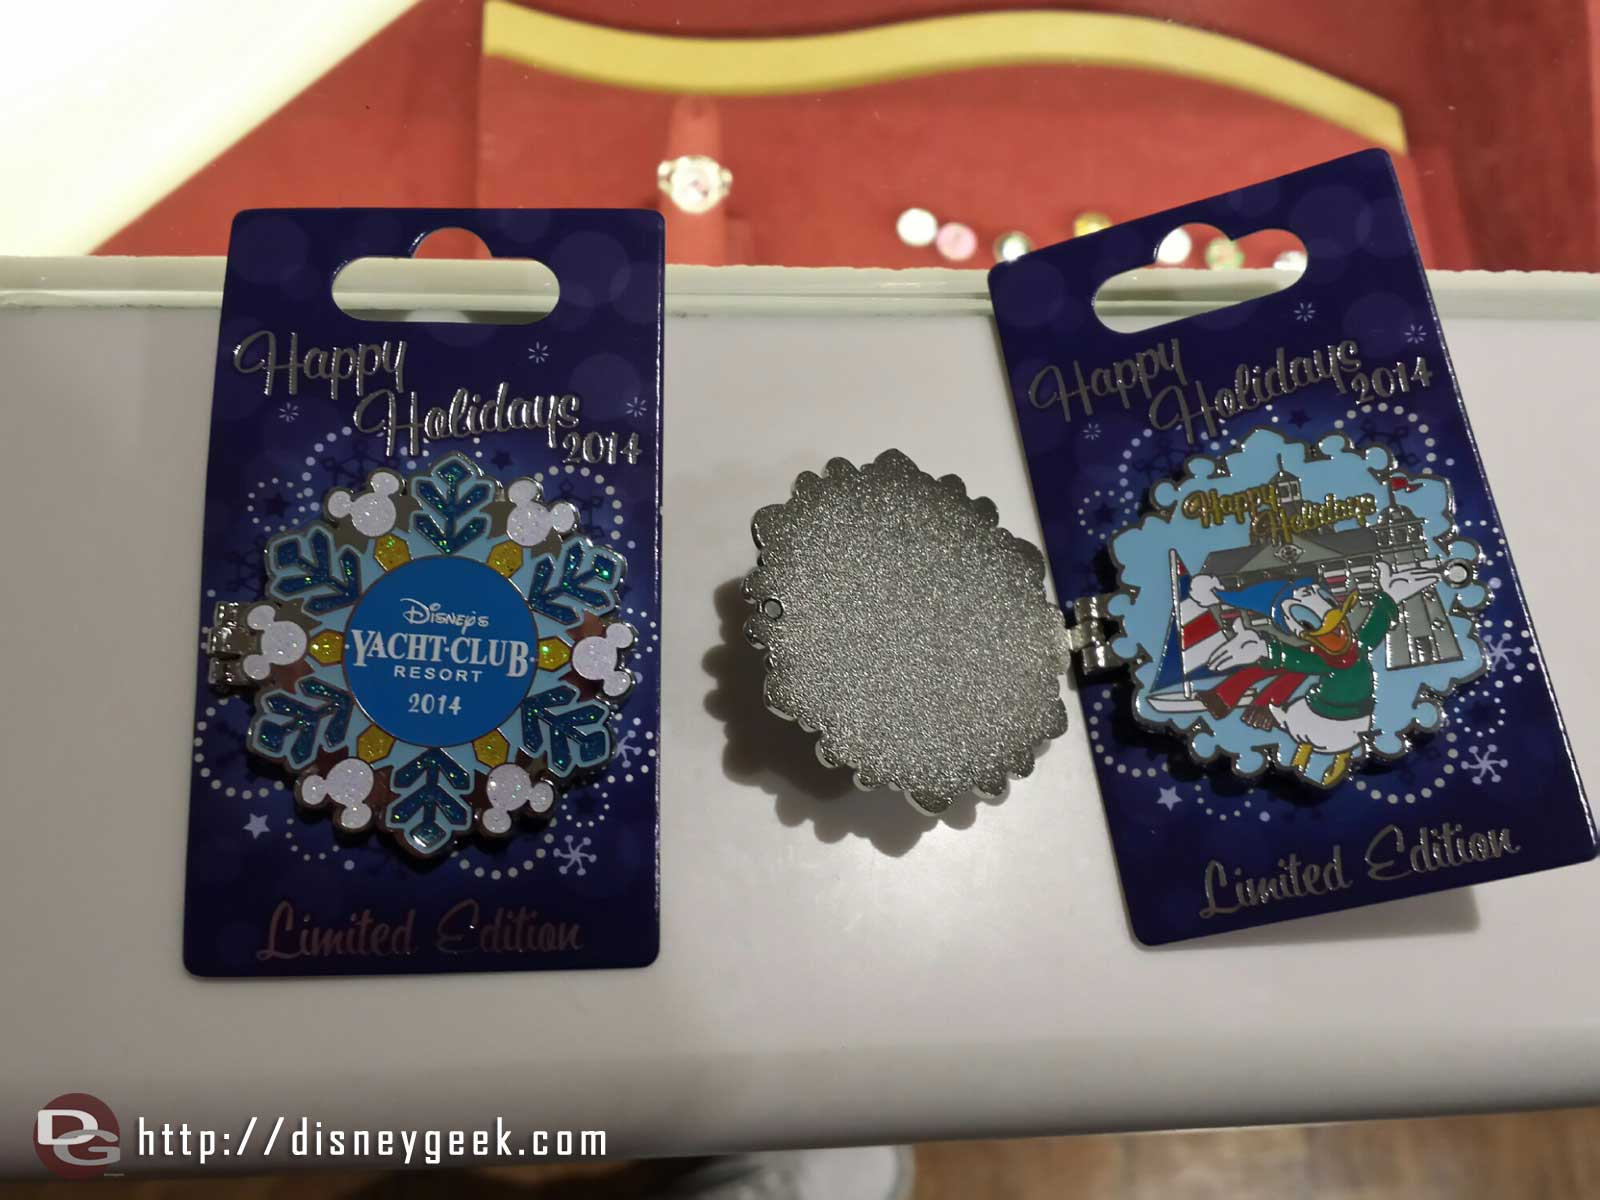 2014 Yacht Club Holiday pin.